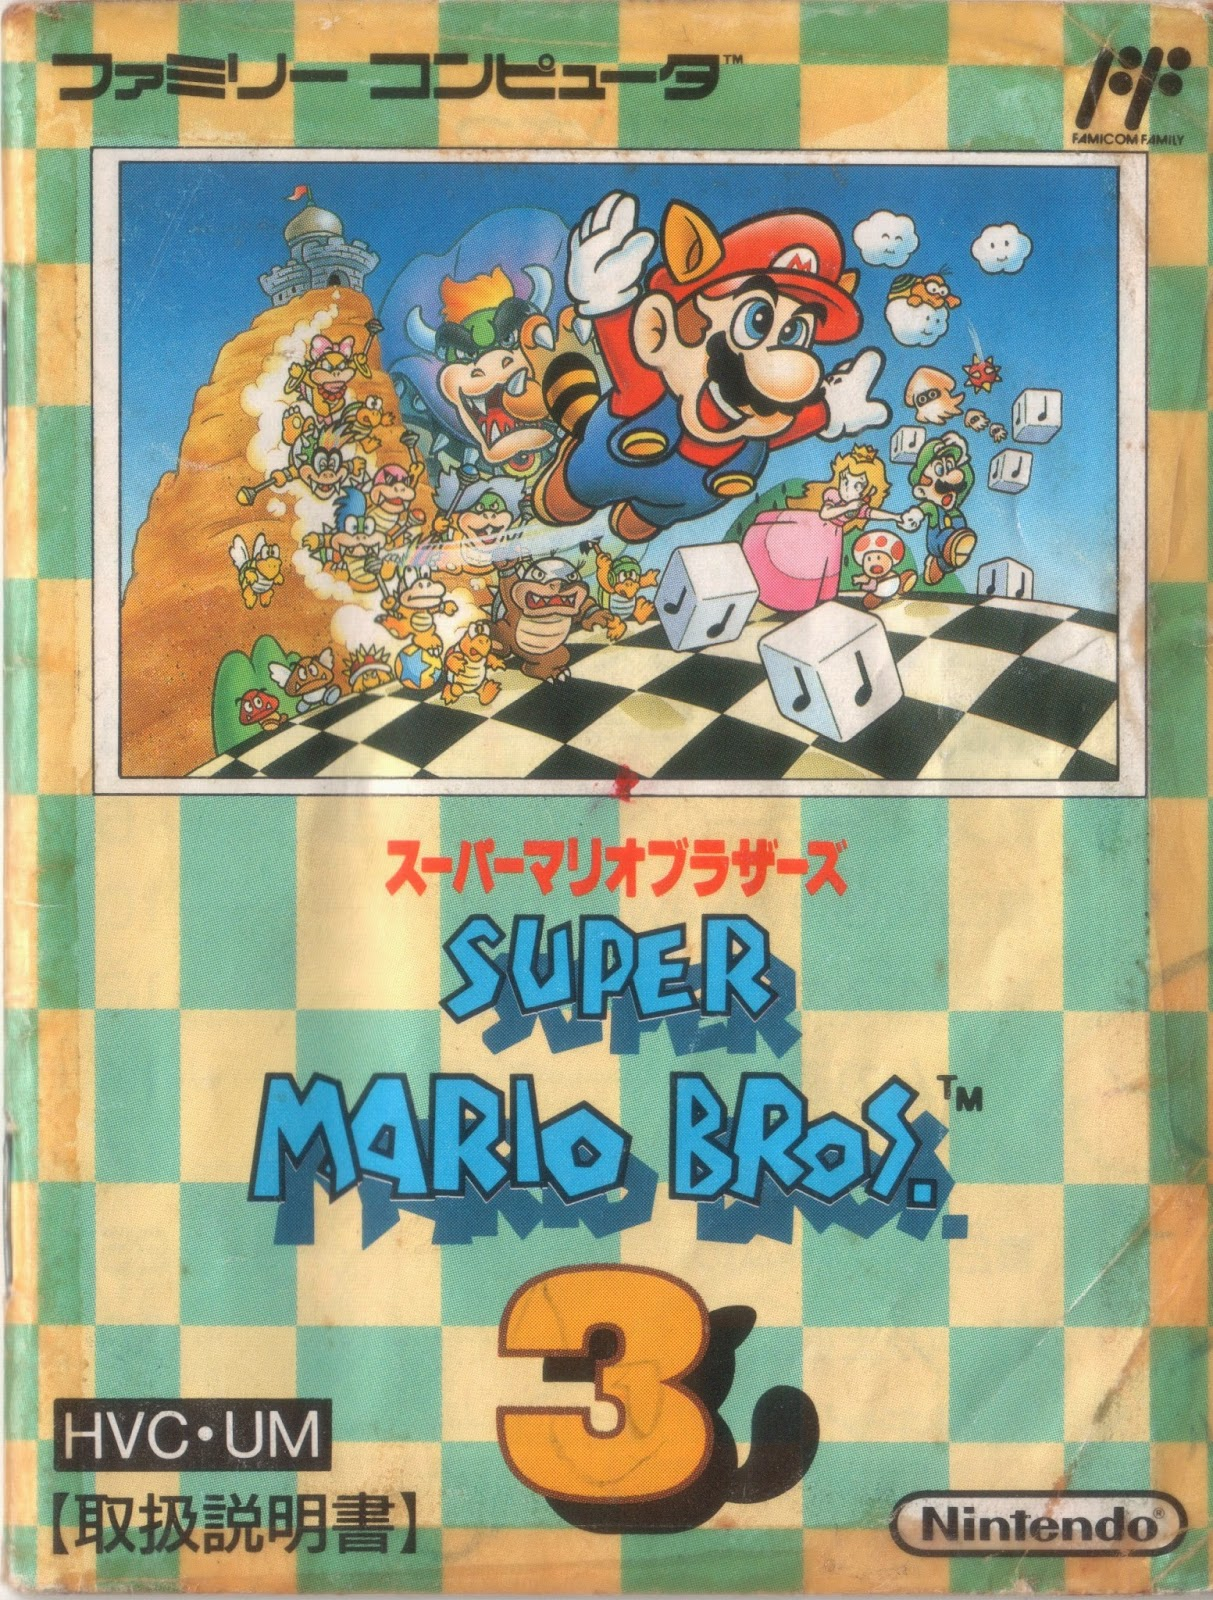 SomeRussianMarioDude: Famicom Game Manuals #7: Super Mario